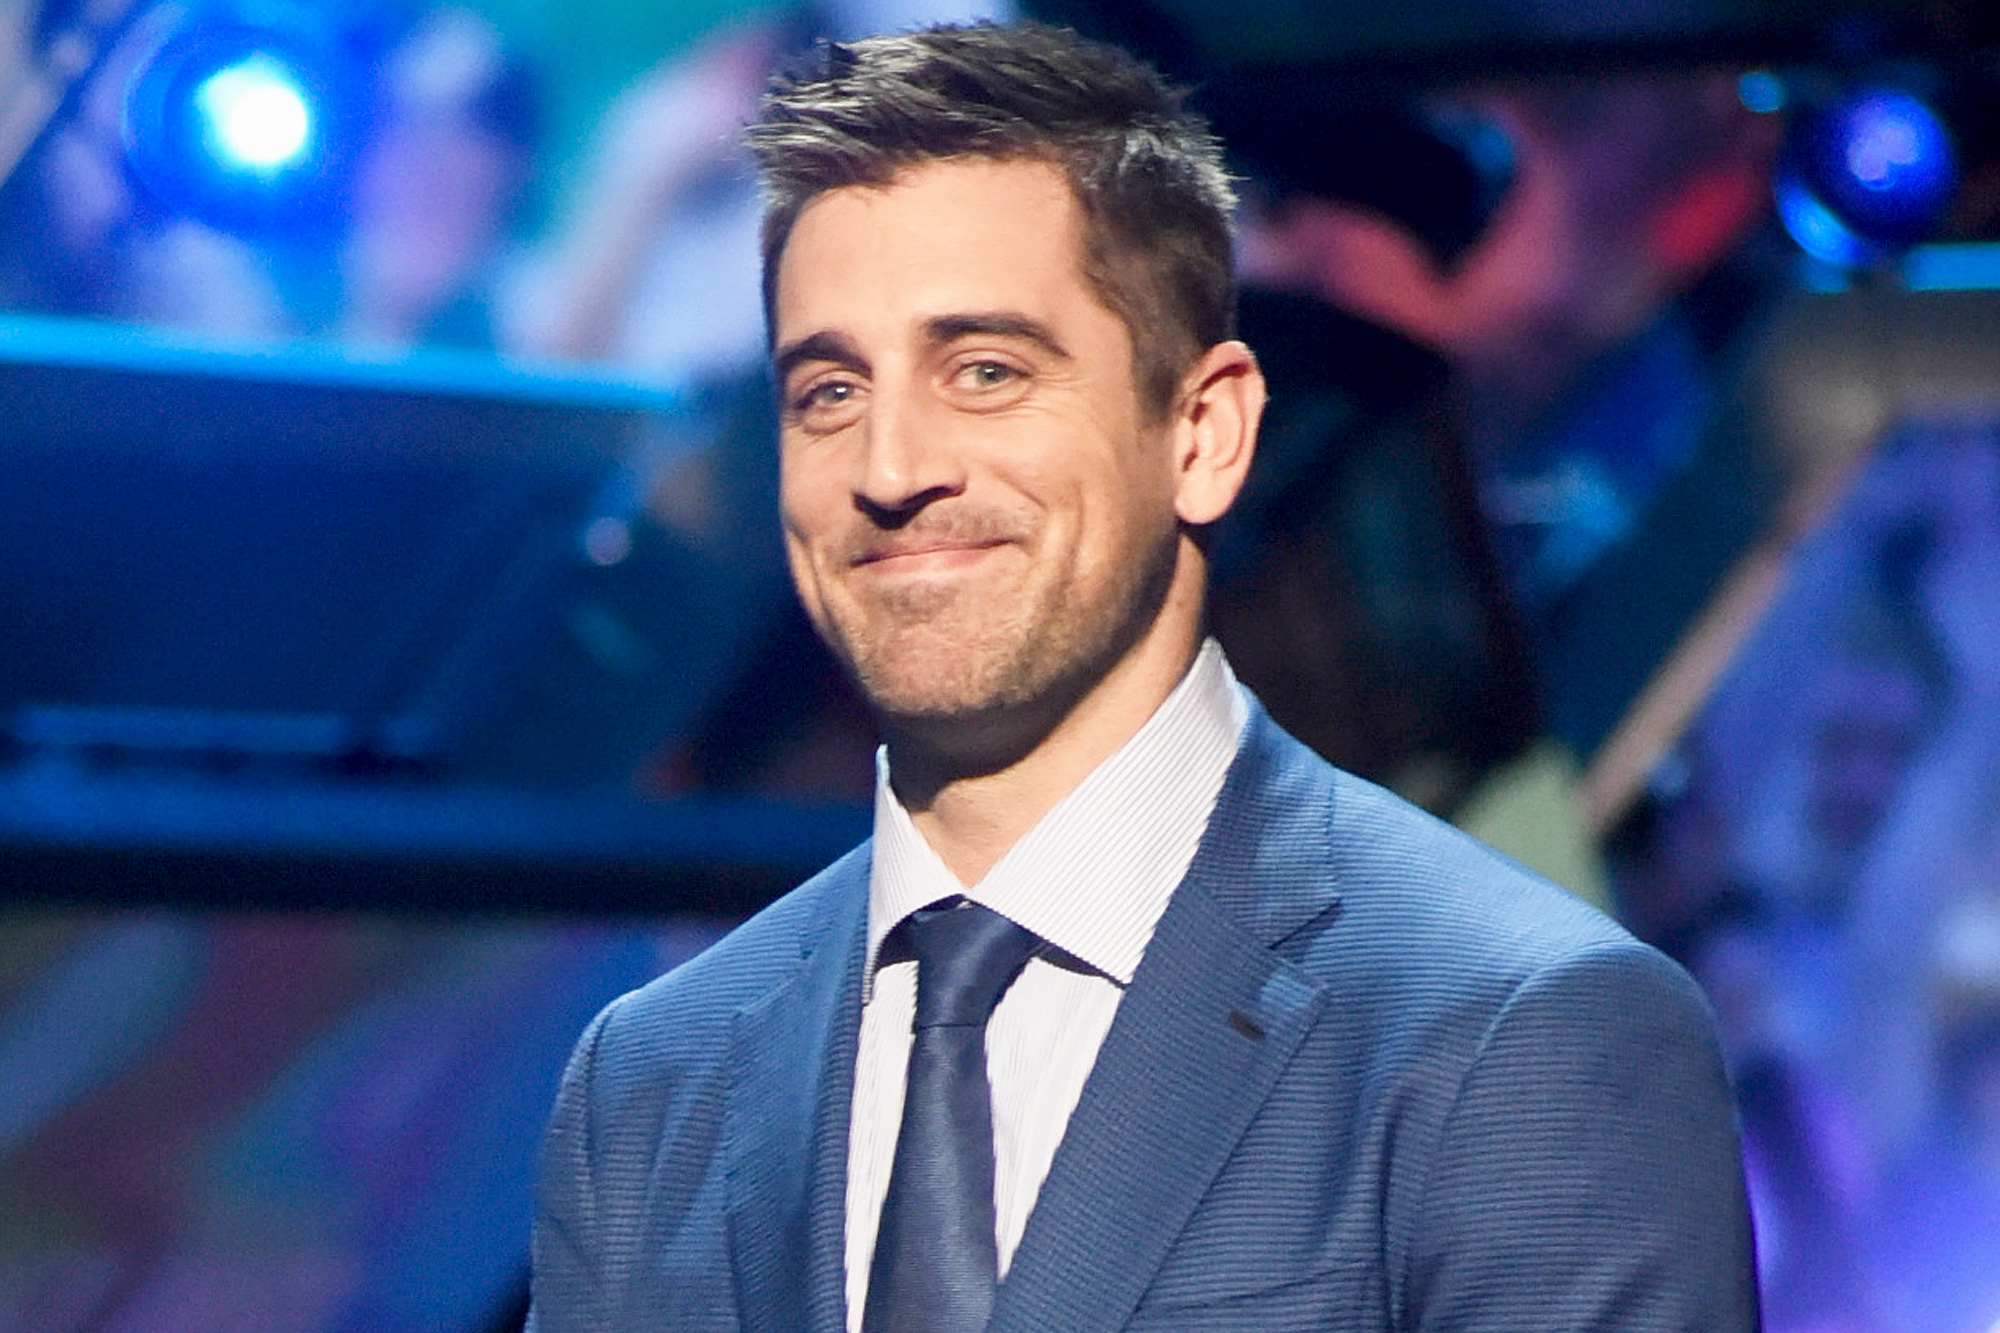 Aaron Rodgers Reunites with Parents After His Brother Accused Him of Not Reaching Out During Fires